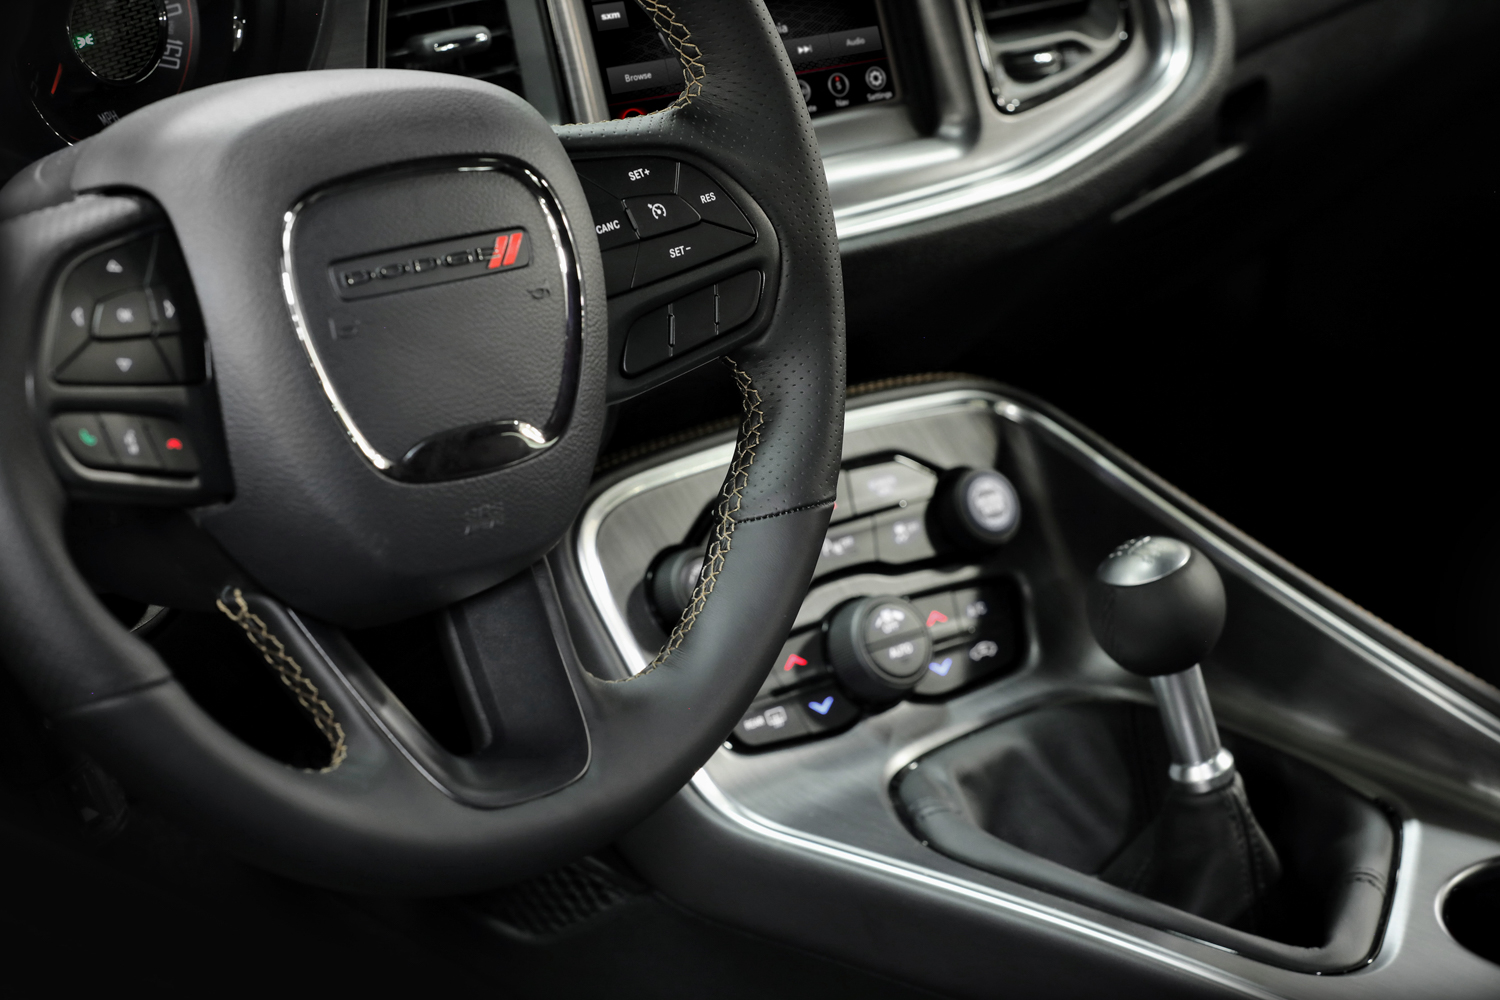 Stars & Stripes Edition challenger interior shifter